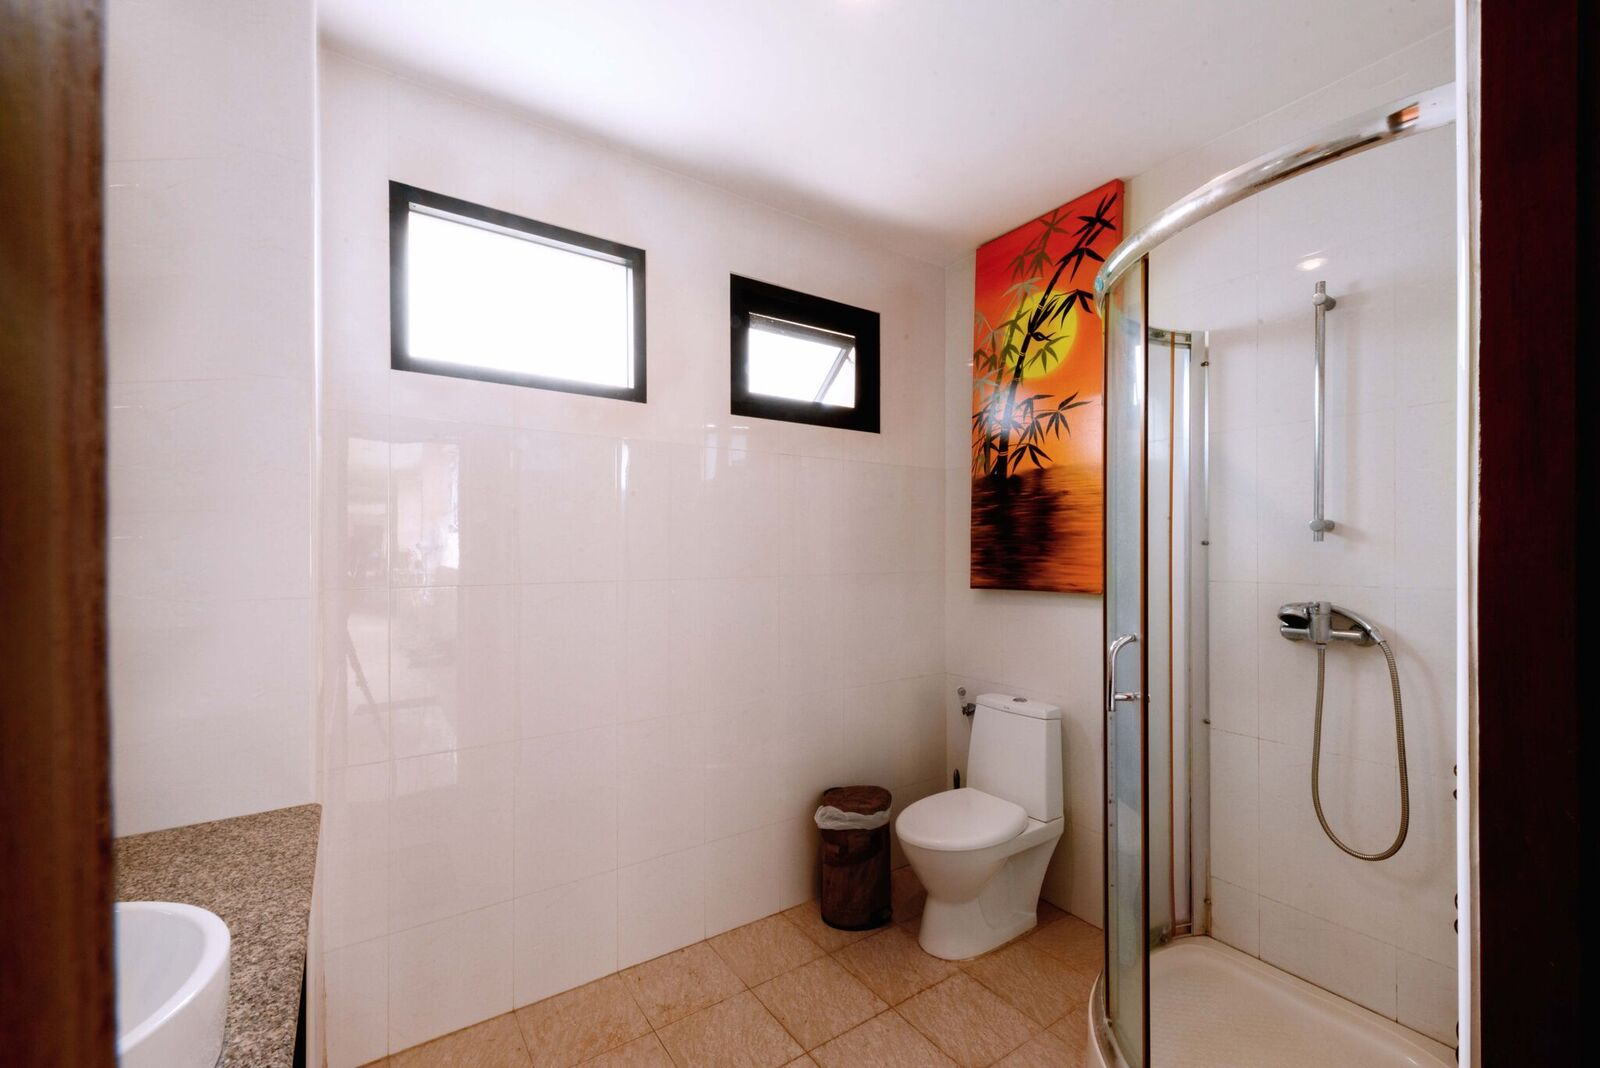 Ko Samui Properties Foreign Freehold Apartment for sale, Thailand property for sale, Koh Samui property for sale,